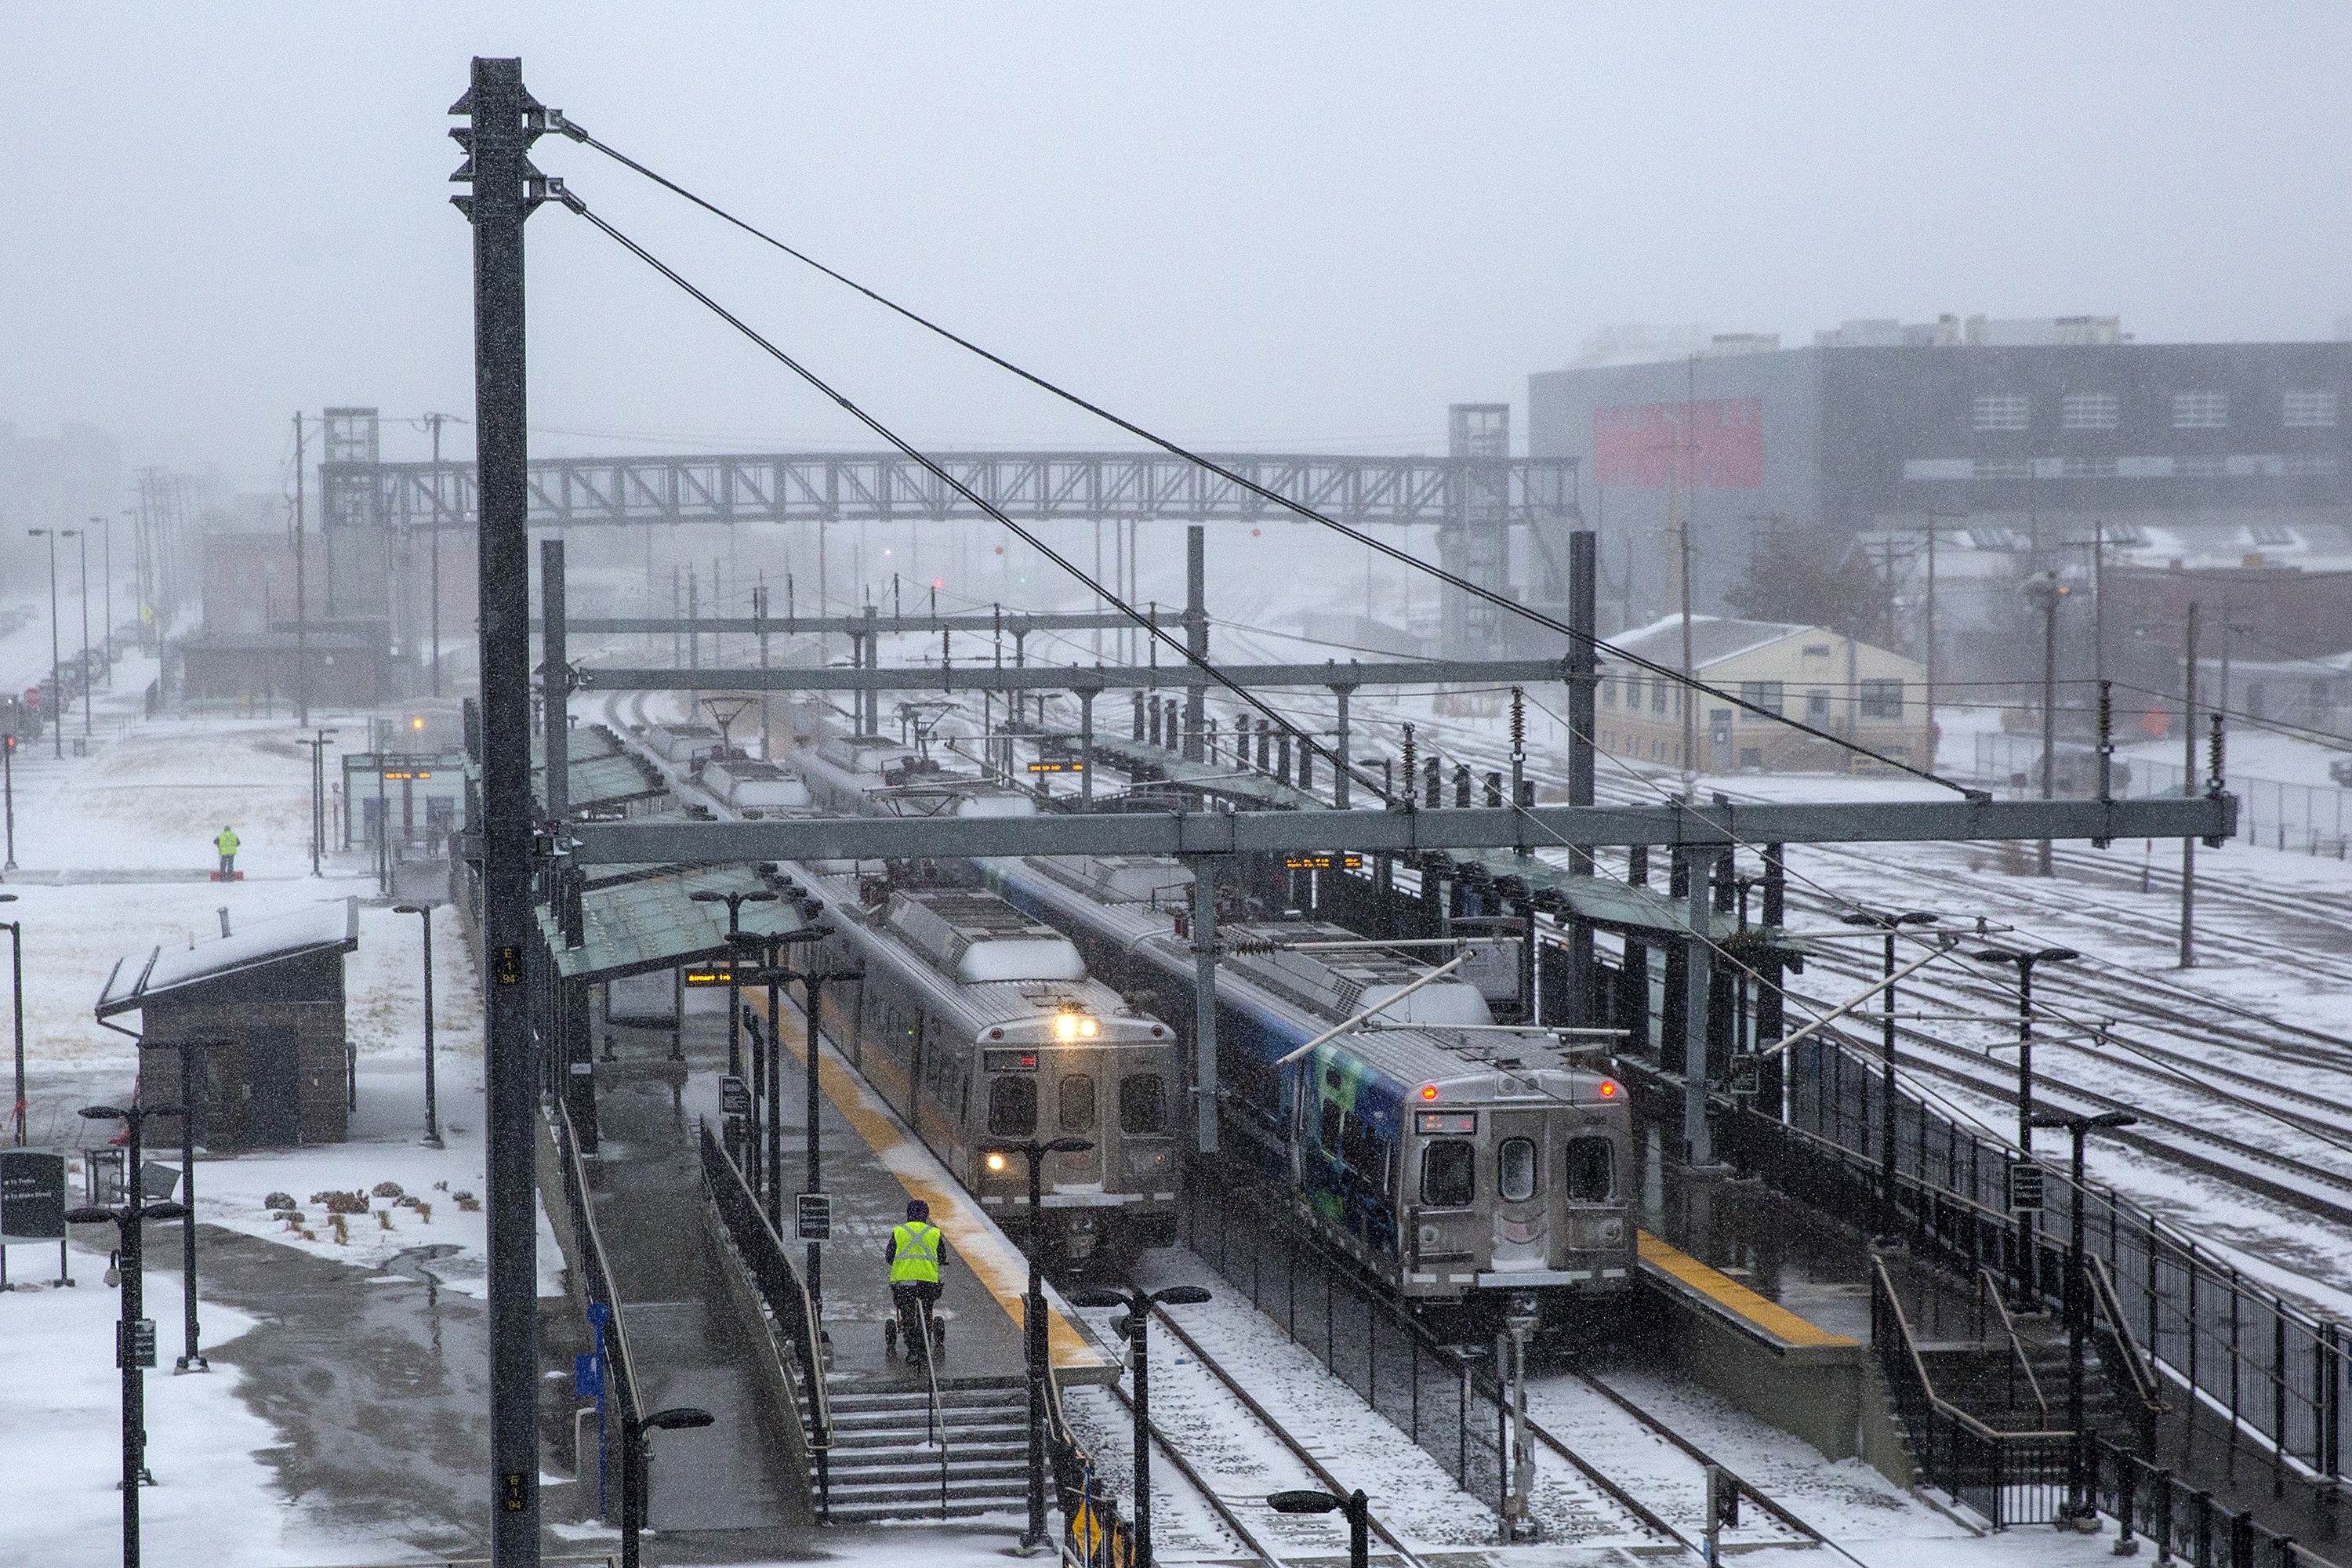 <p>RTD A Line commuter rail trains at the 38th and Blake Street station in Denver.</p>